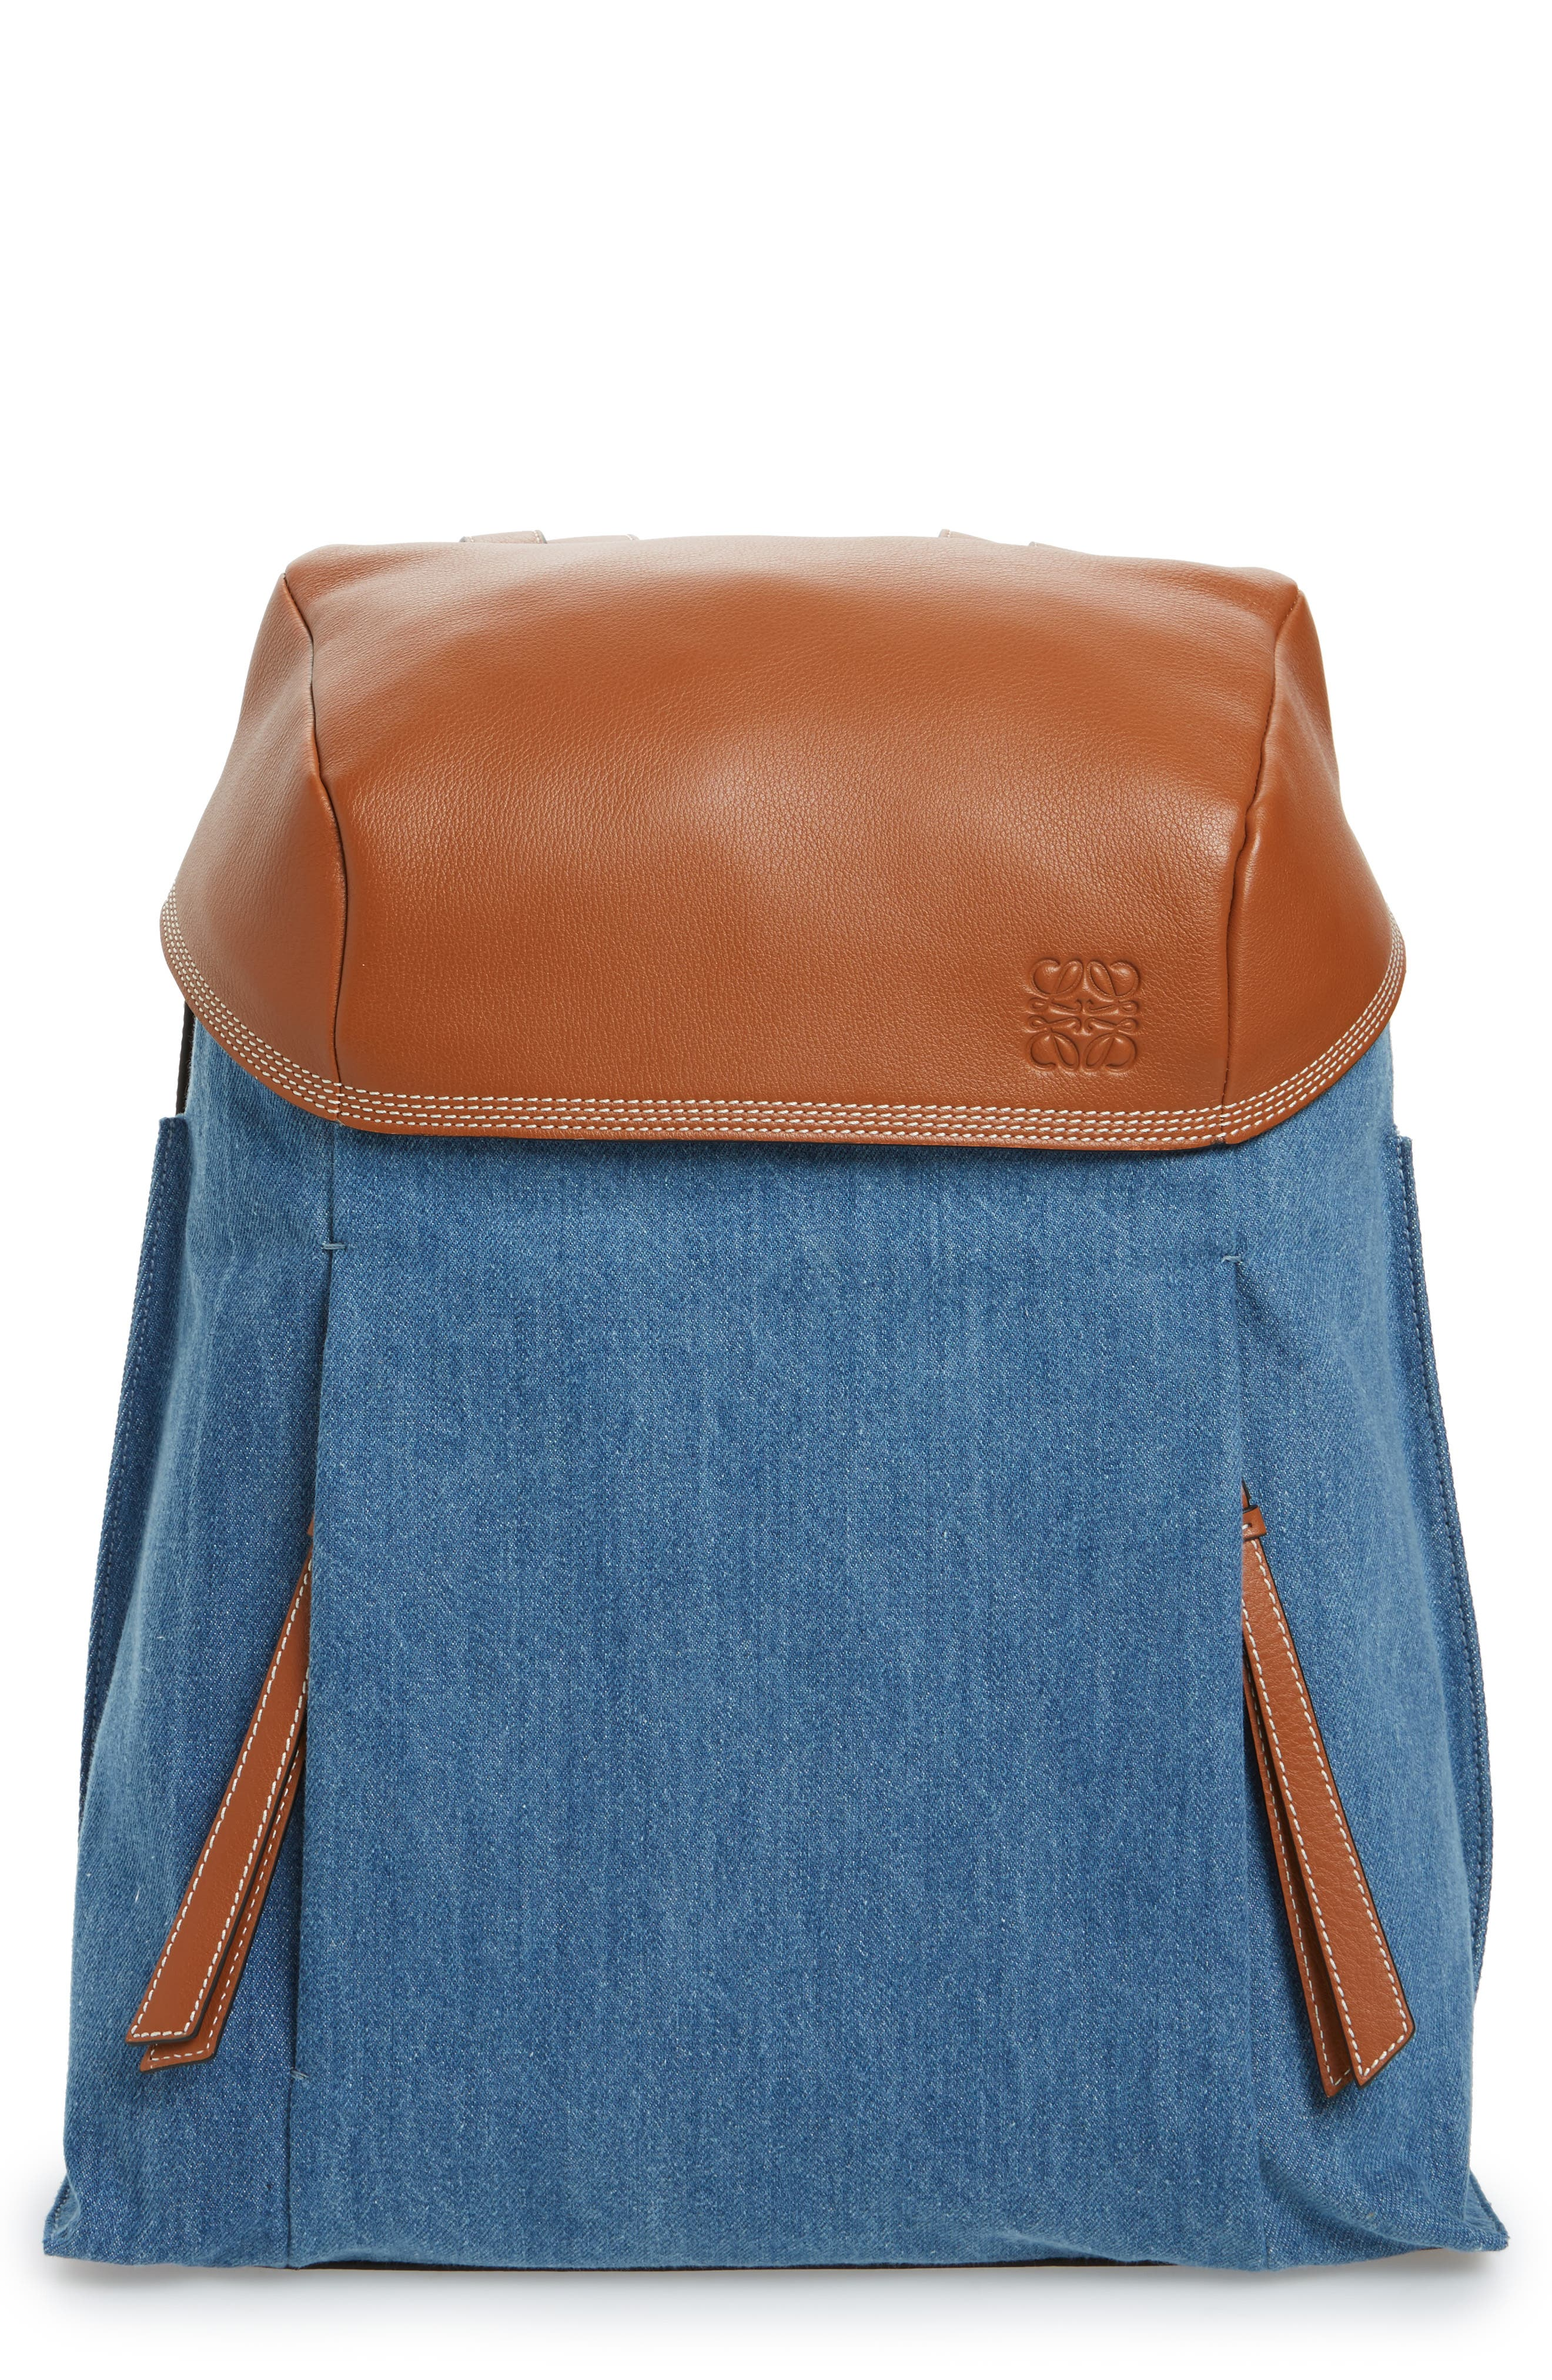 T Small Denim & Leather Backpack,                             Main thumbnail 1, color,                             476